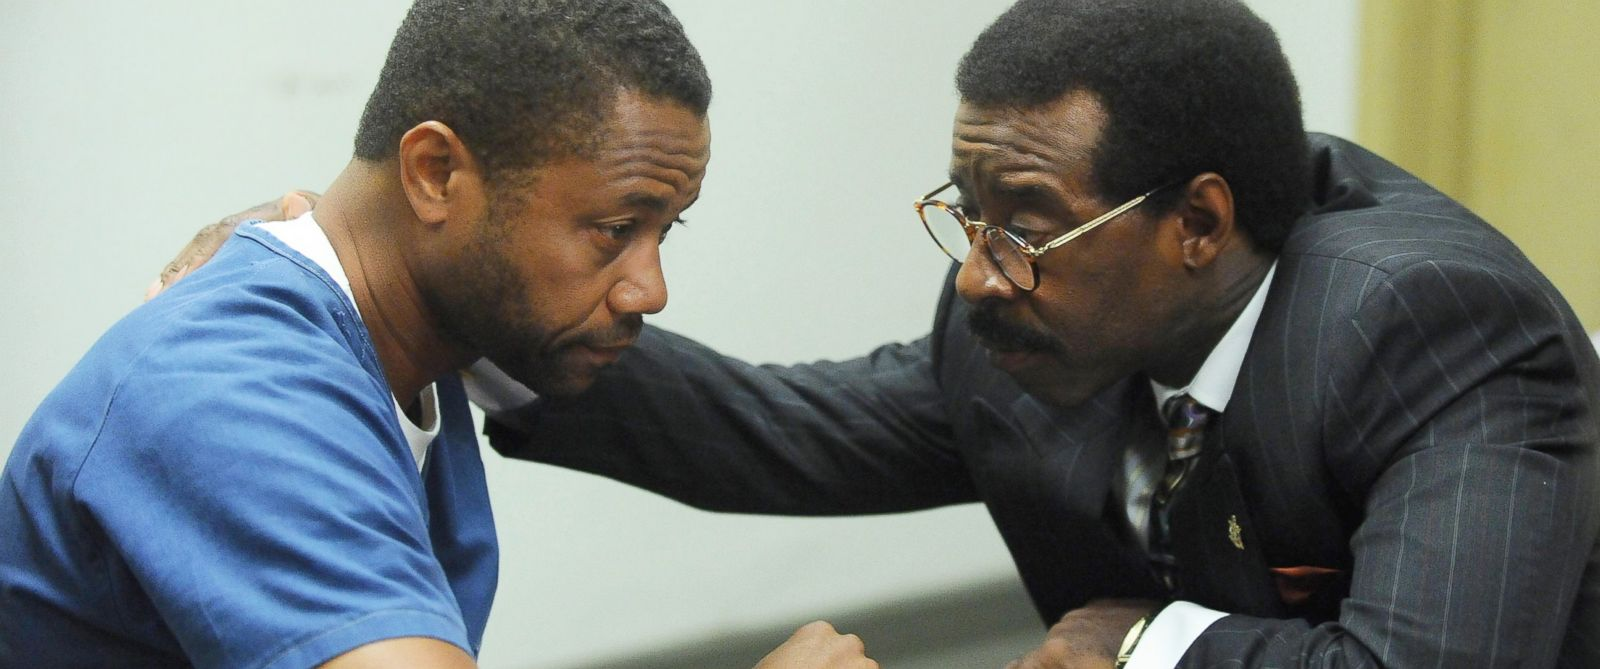 "PHOTO:Cuba Gooding, Jr. as O.J. Simpson and Courtney B. Vance as Johnnie Cochran in a scene from the TV miniseries, ""The People v. O.J. Simpson: American Crime Story."""